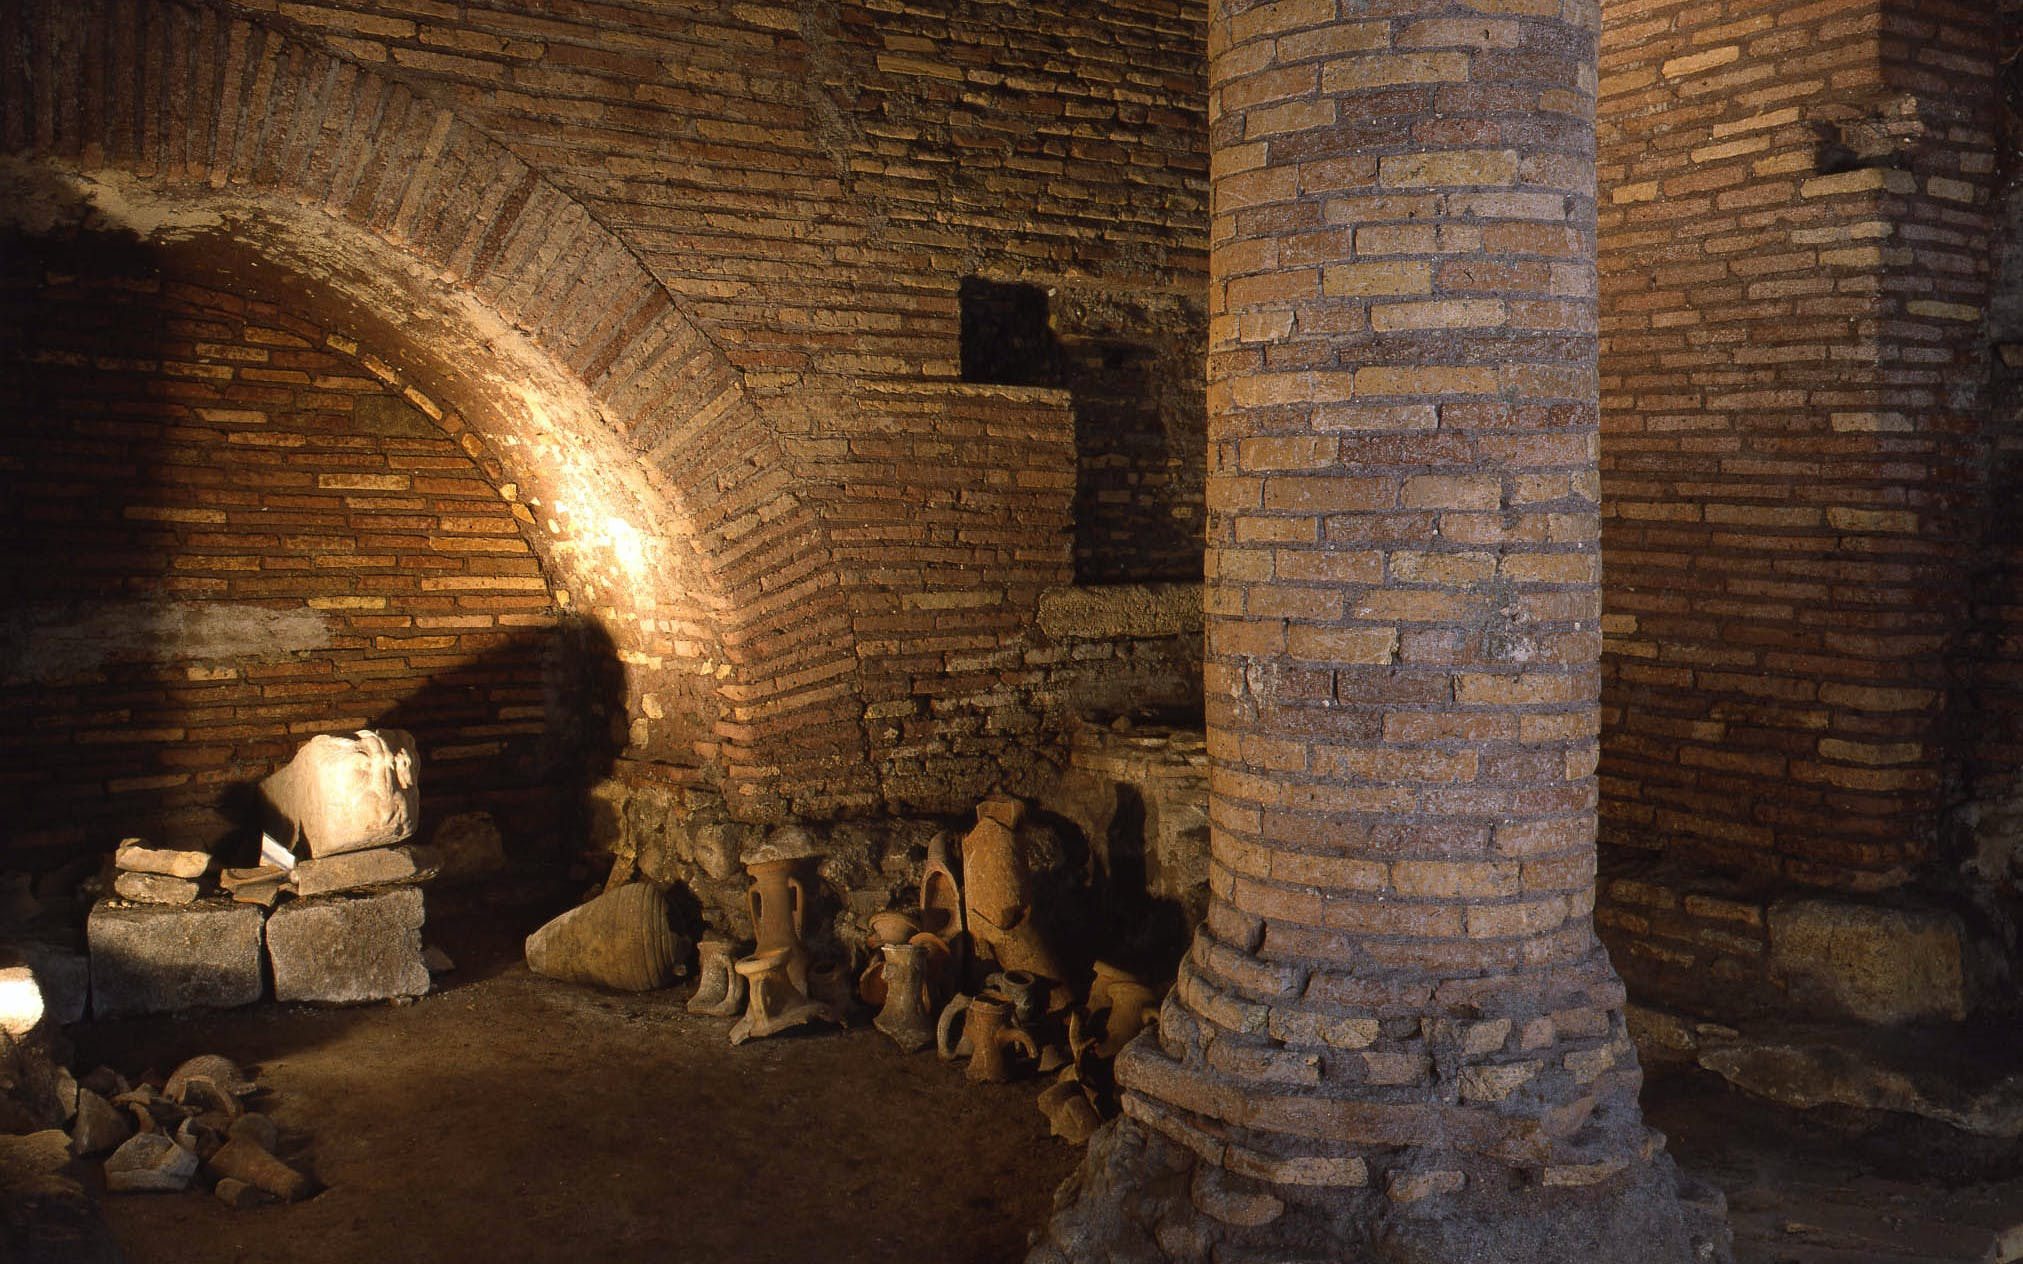 st. paul alla regola underground walking tour - express entry-1